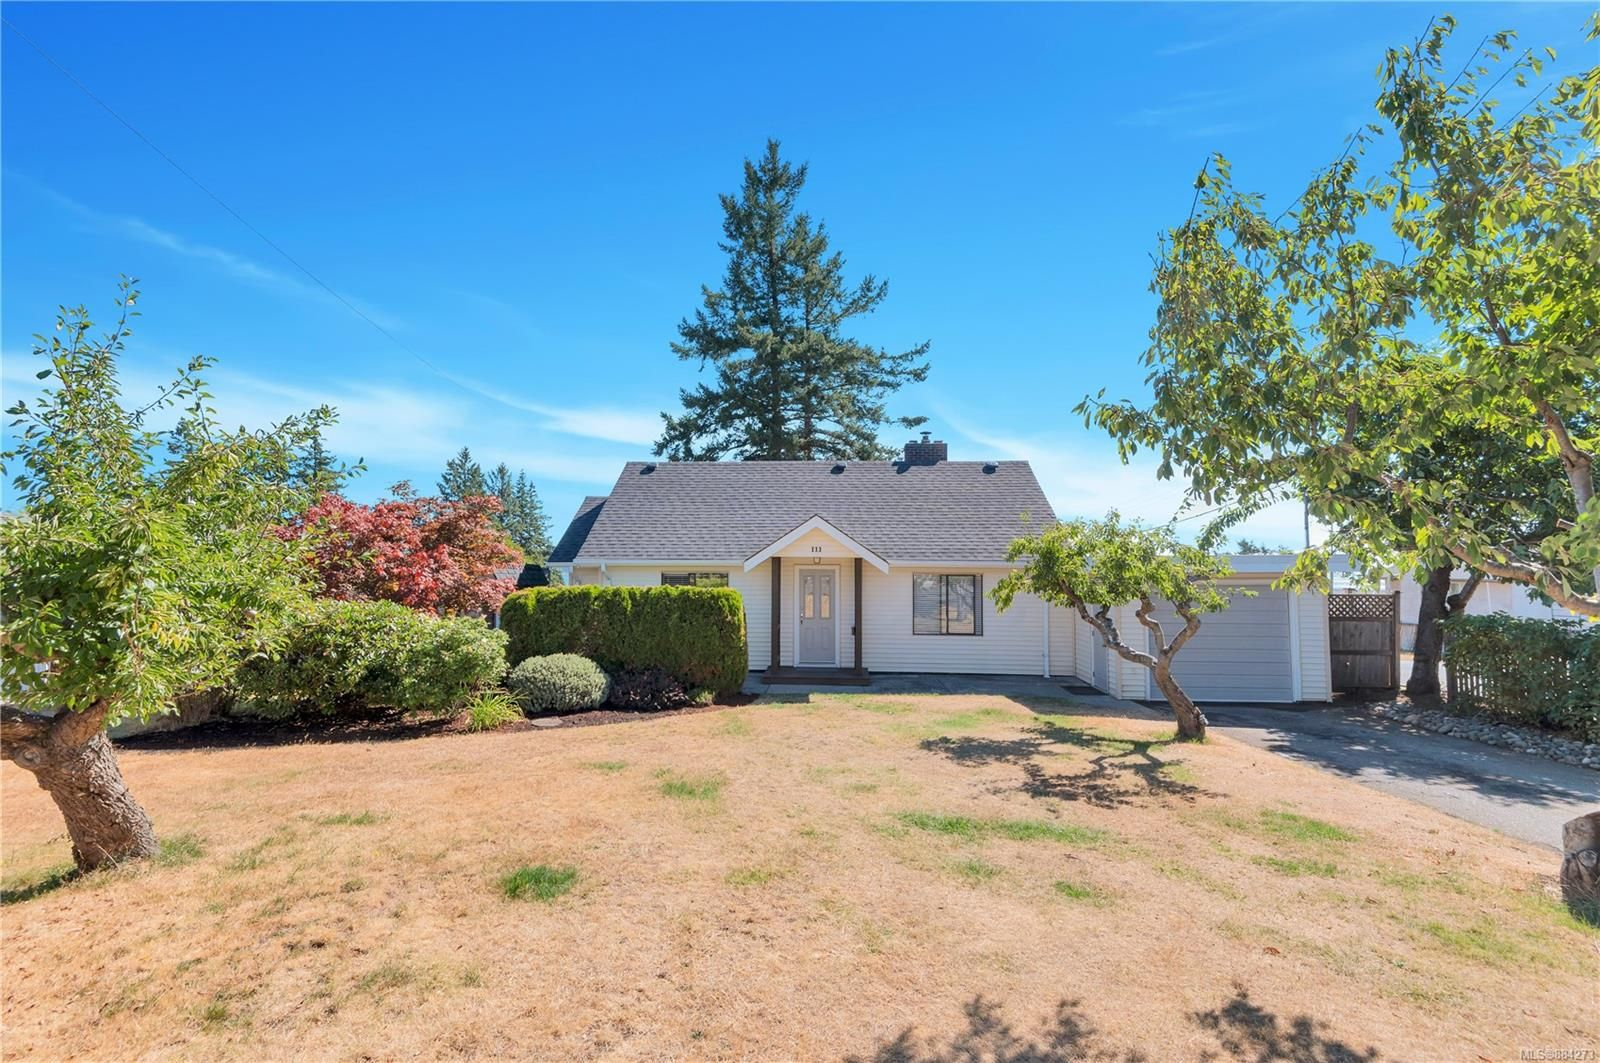 Main Photo: 111 Thulin St in : CR Campbell River Central House for sale (Campbell River)  : MLS®# 884273